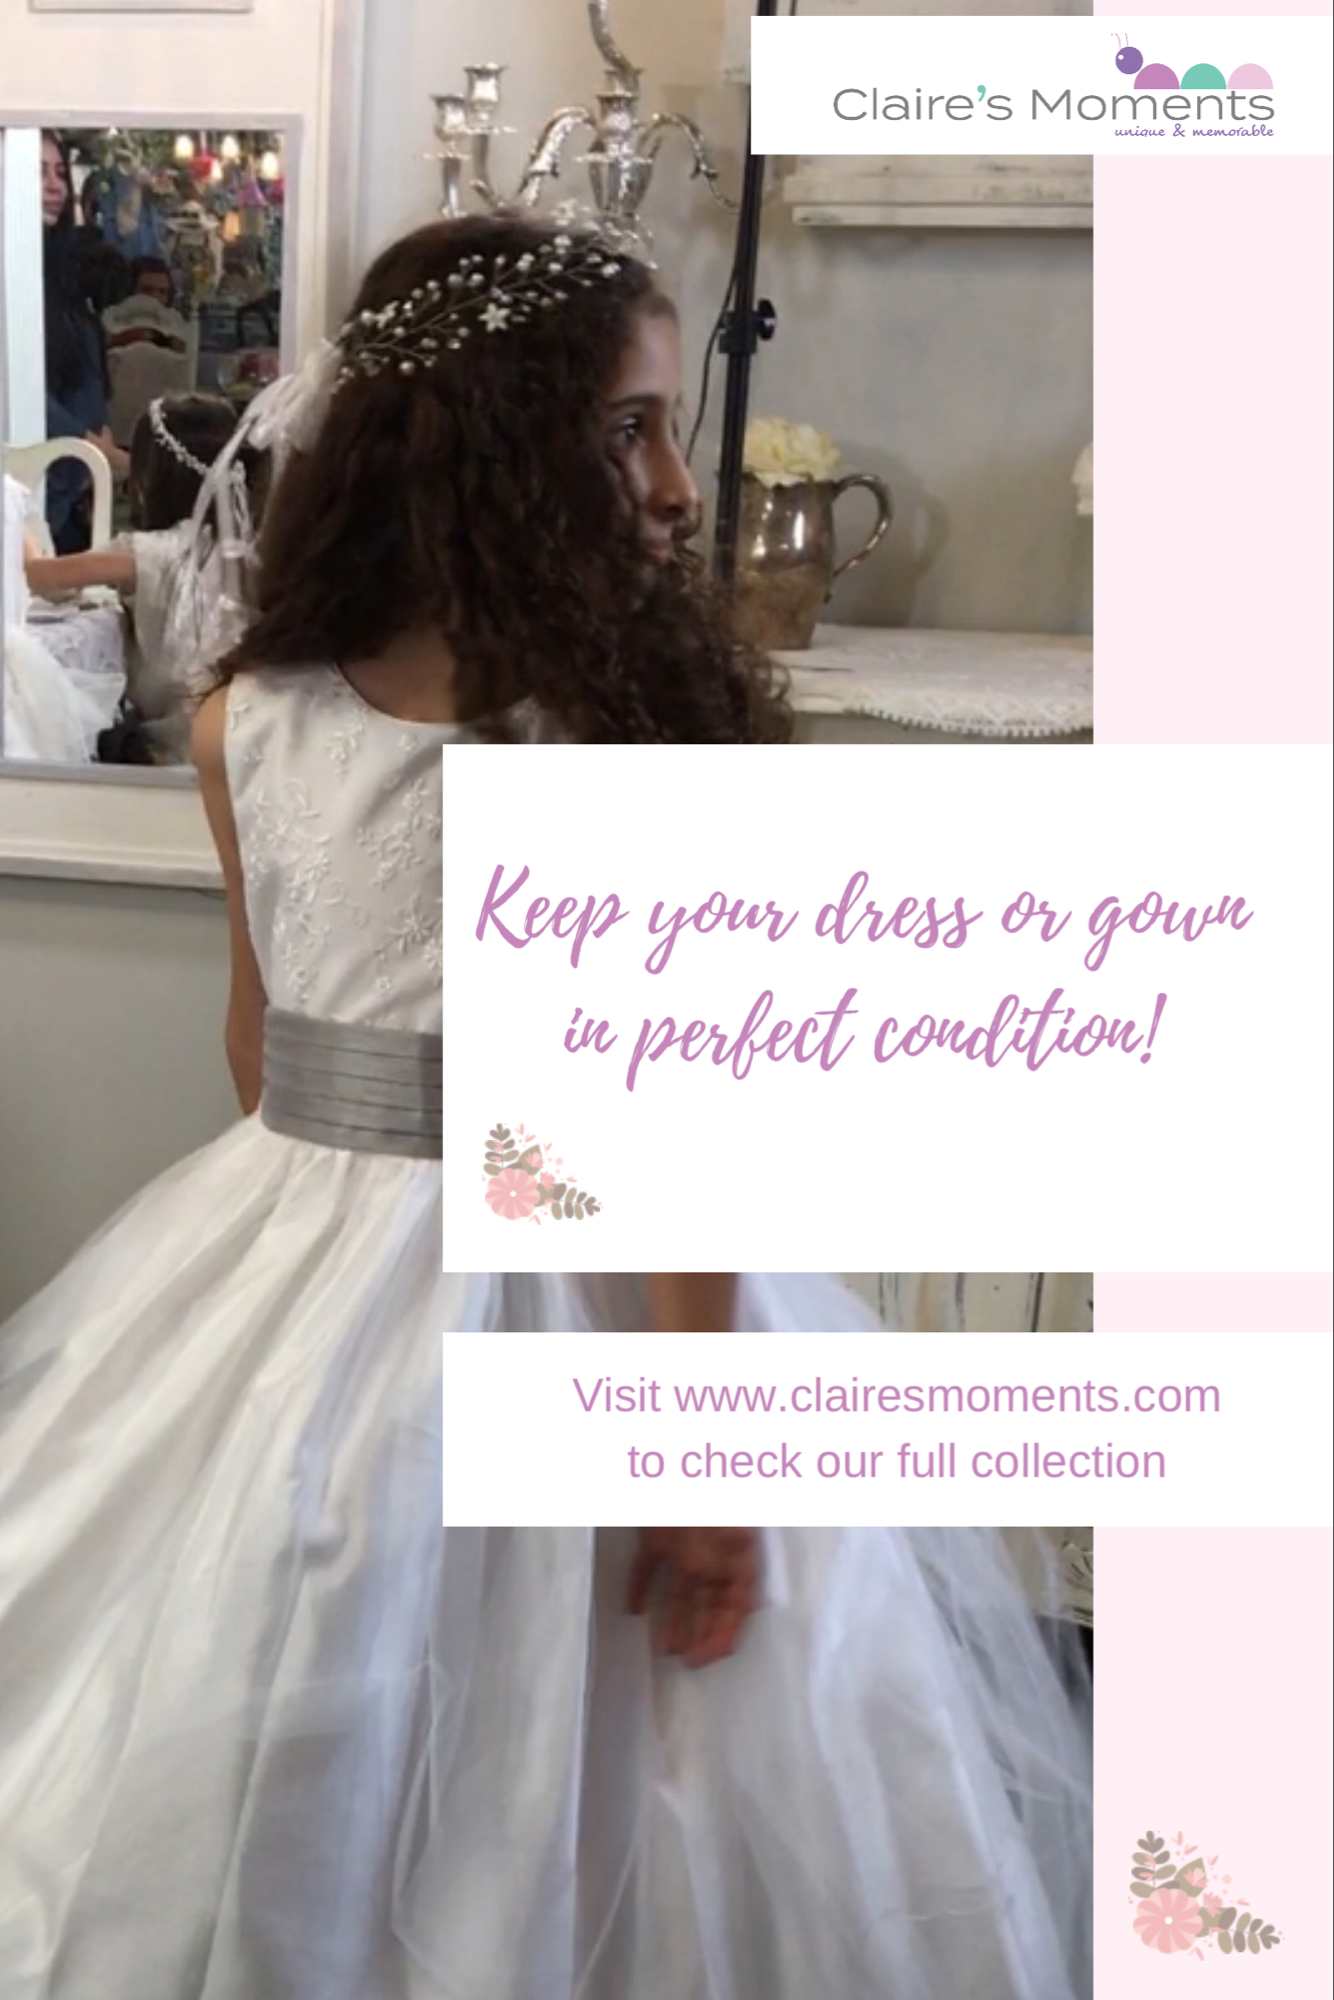 Keep your dress or gown in perfect condition!